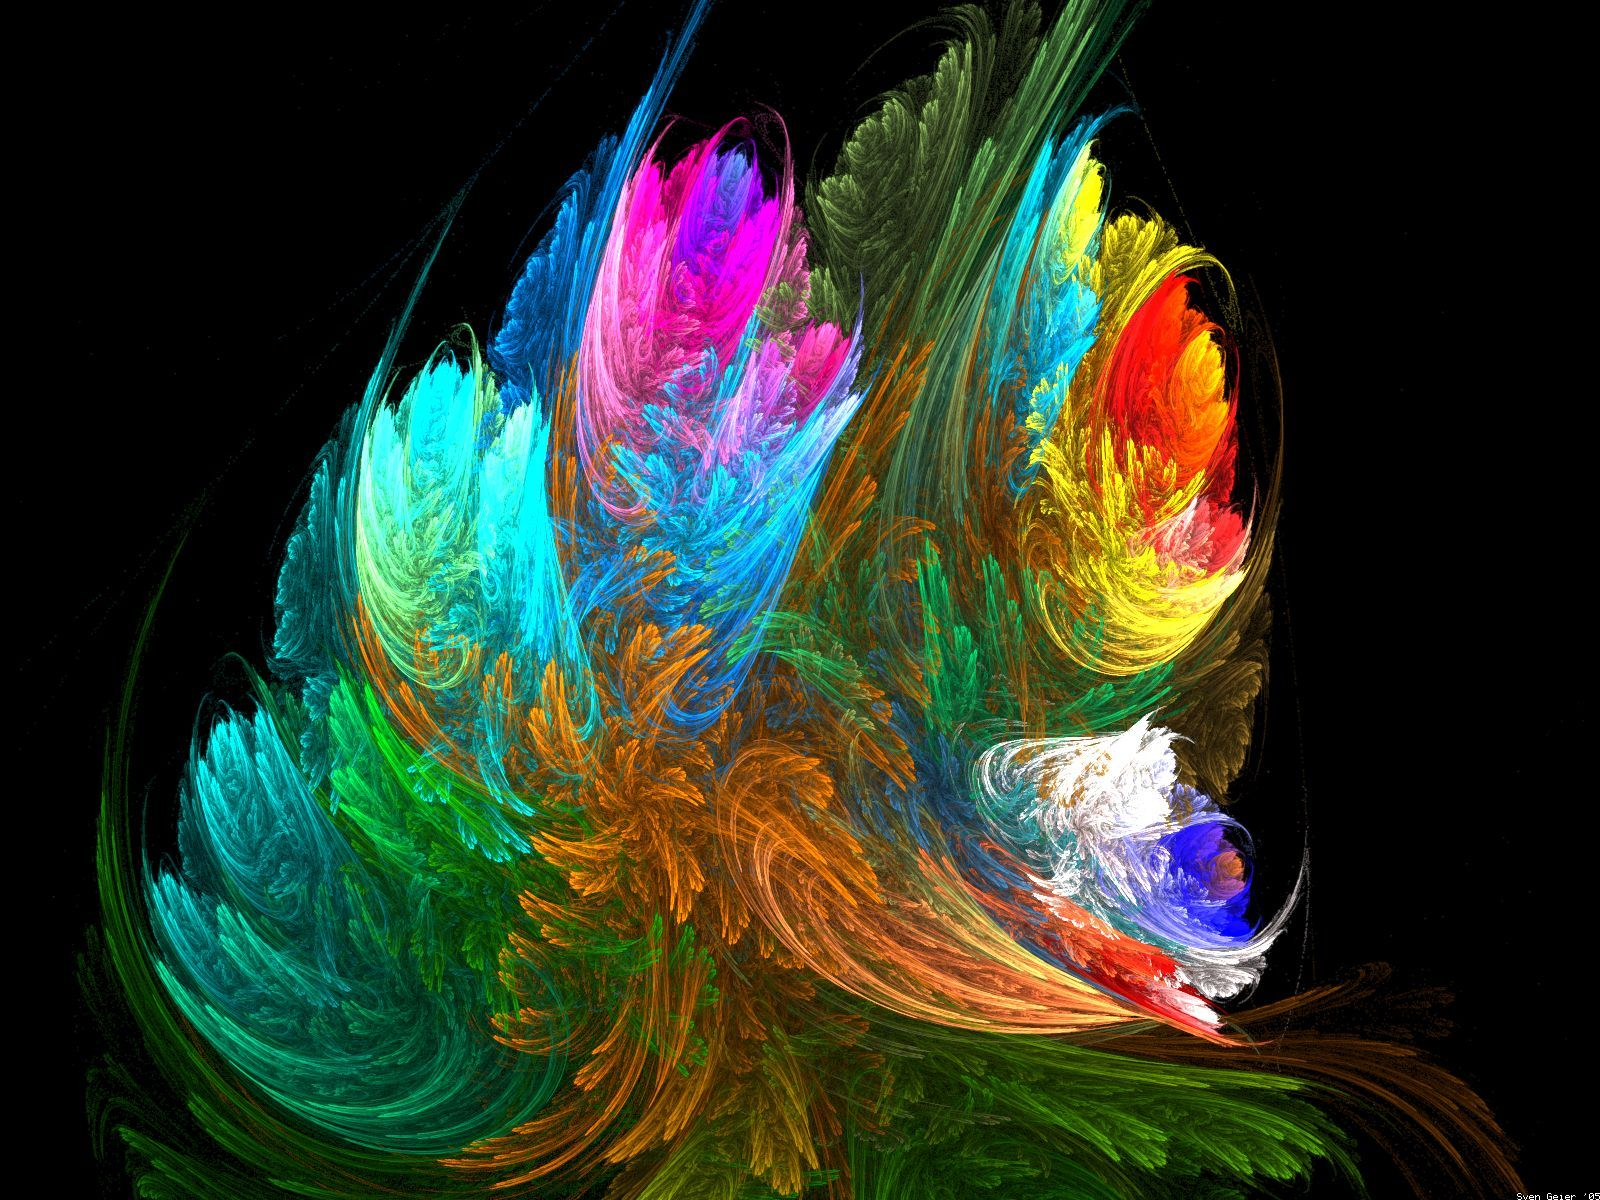 http://4.bp.blogspot.com/-28pgUhNu6YQ/TnTwpqpulNI/AAAAAAAAEF4/Ldc9UIDyniE/s1600/amazing-3d-abstract-wallpapers.jpg